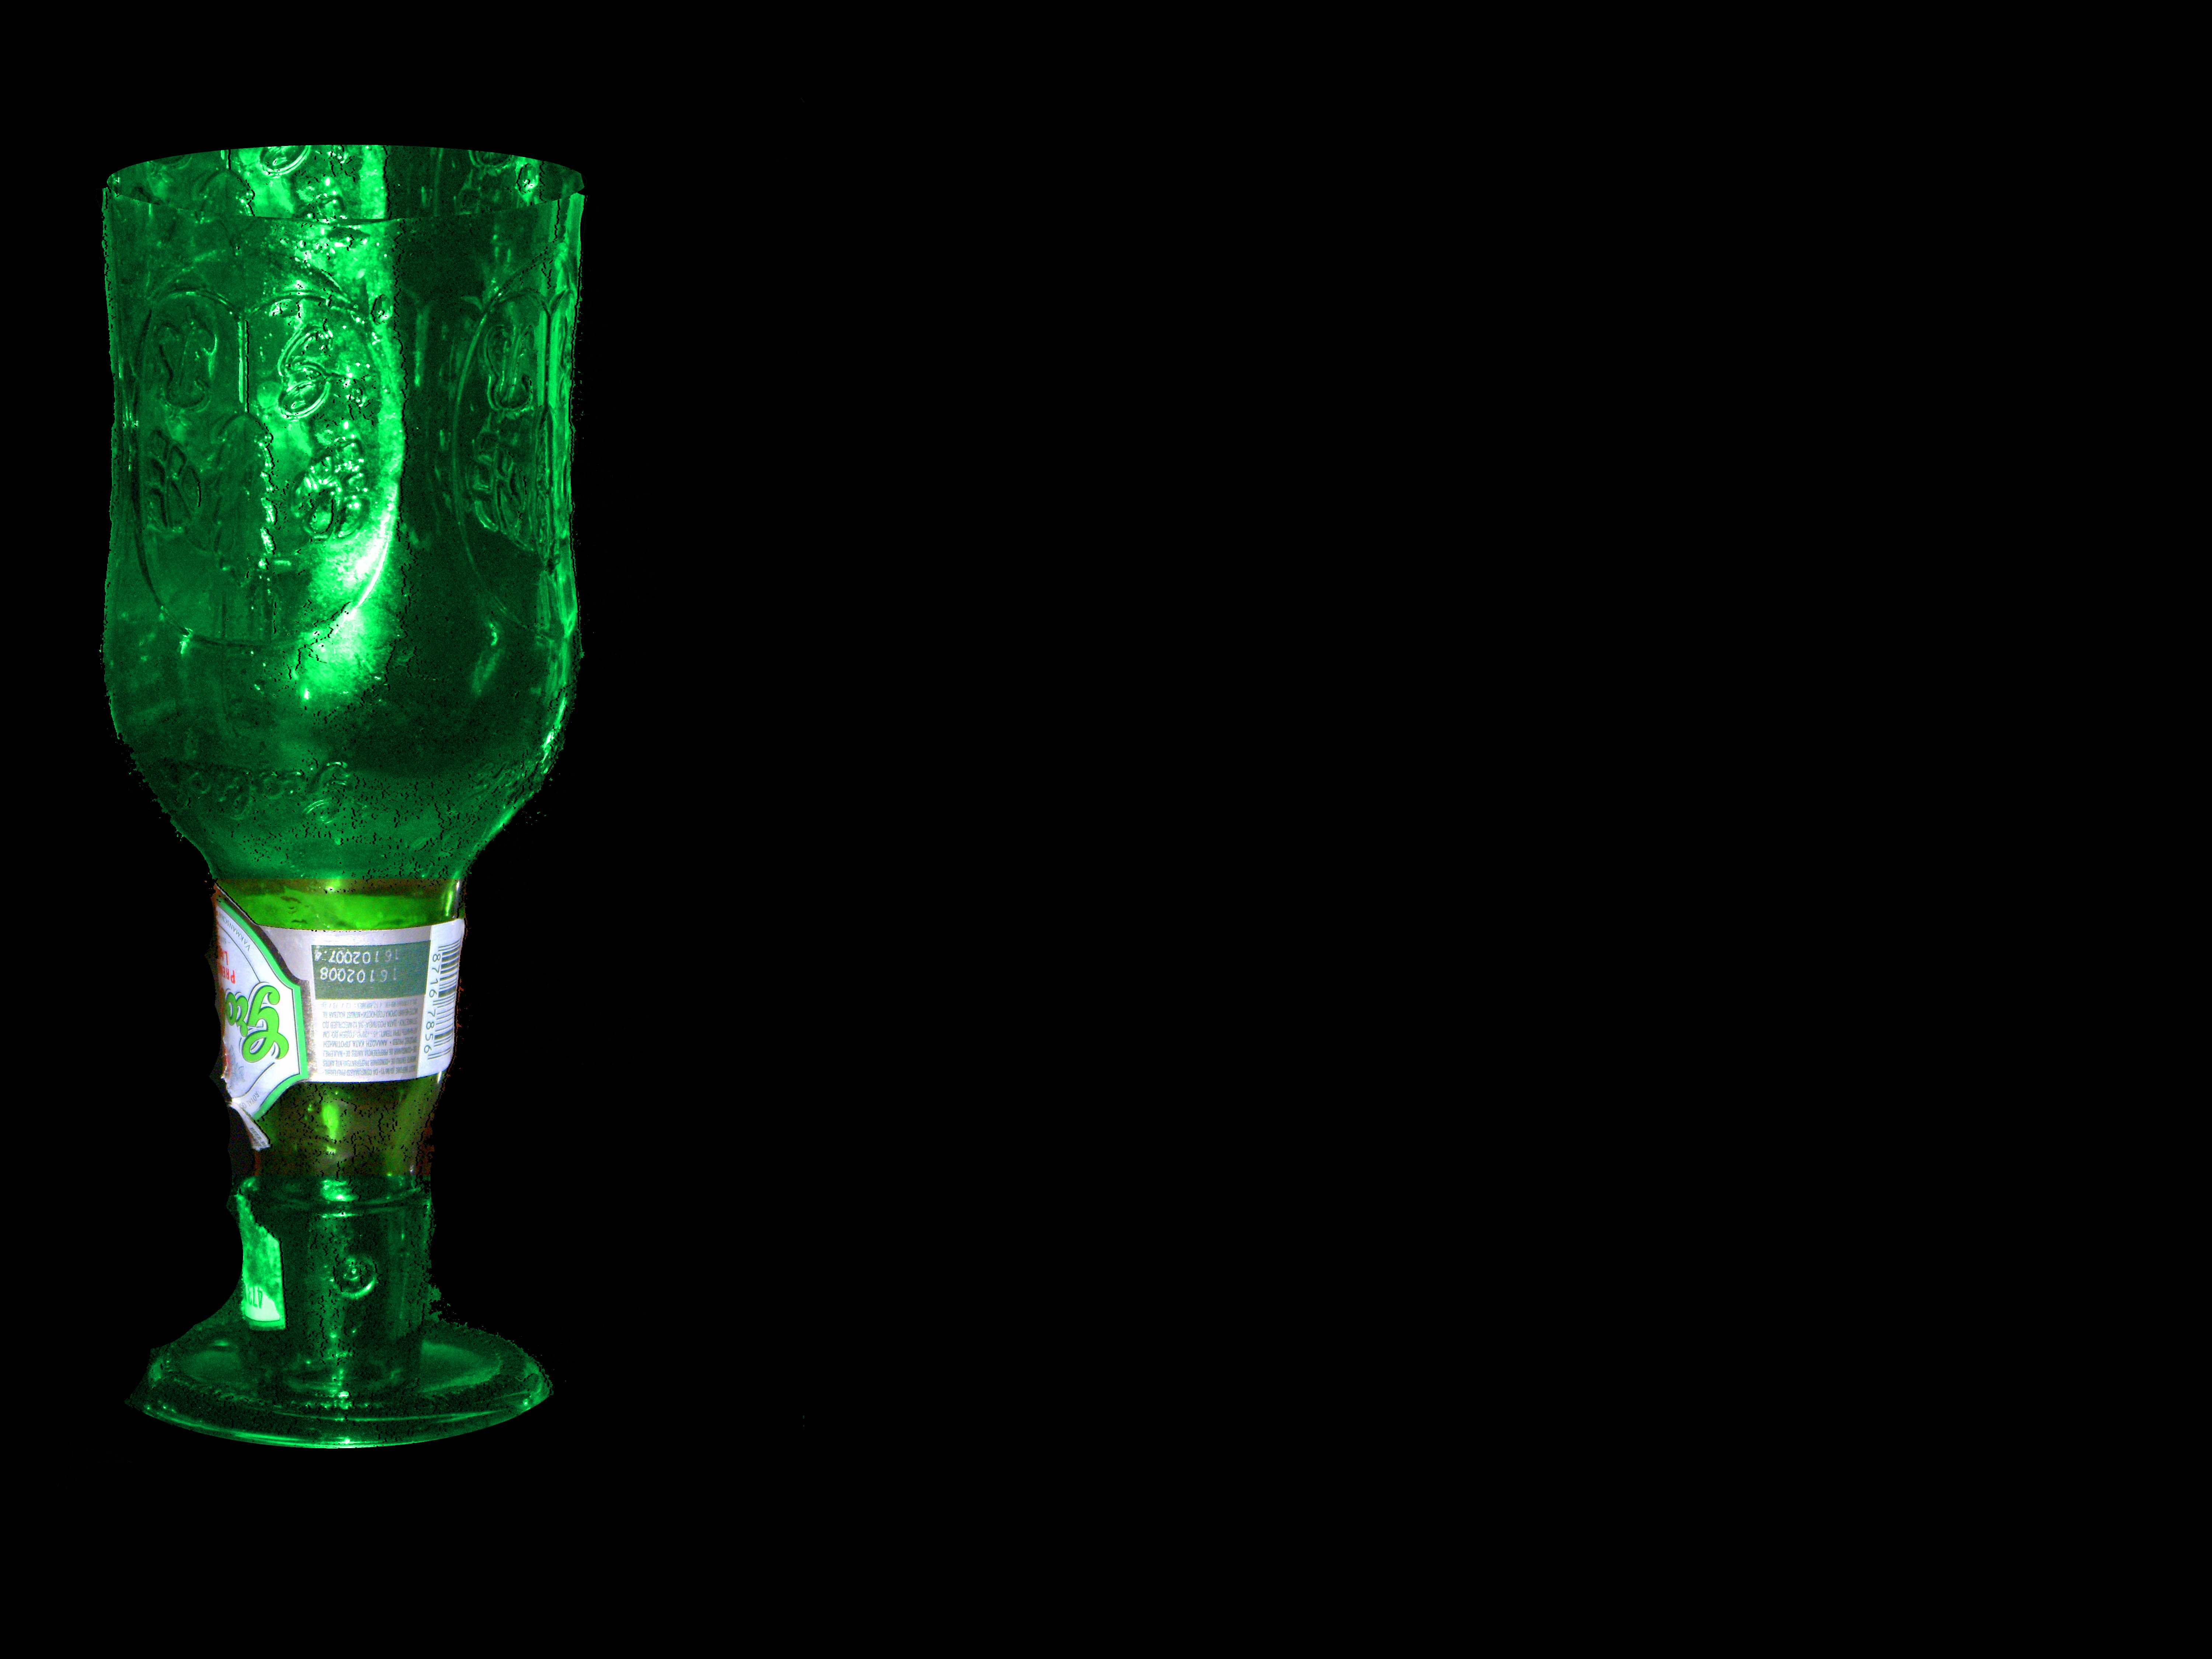 cool beer glass made out of bottle